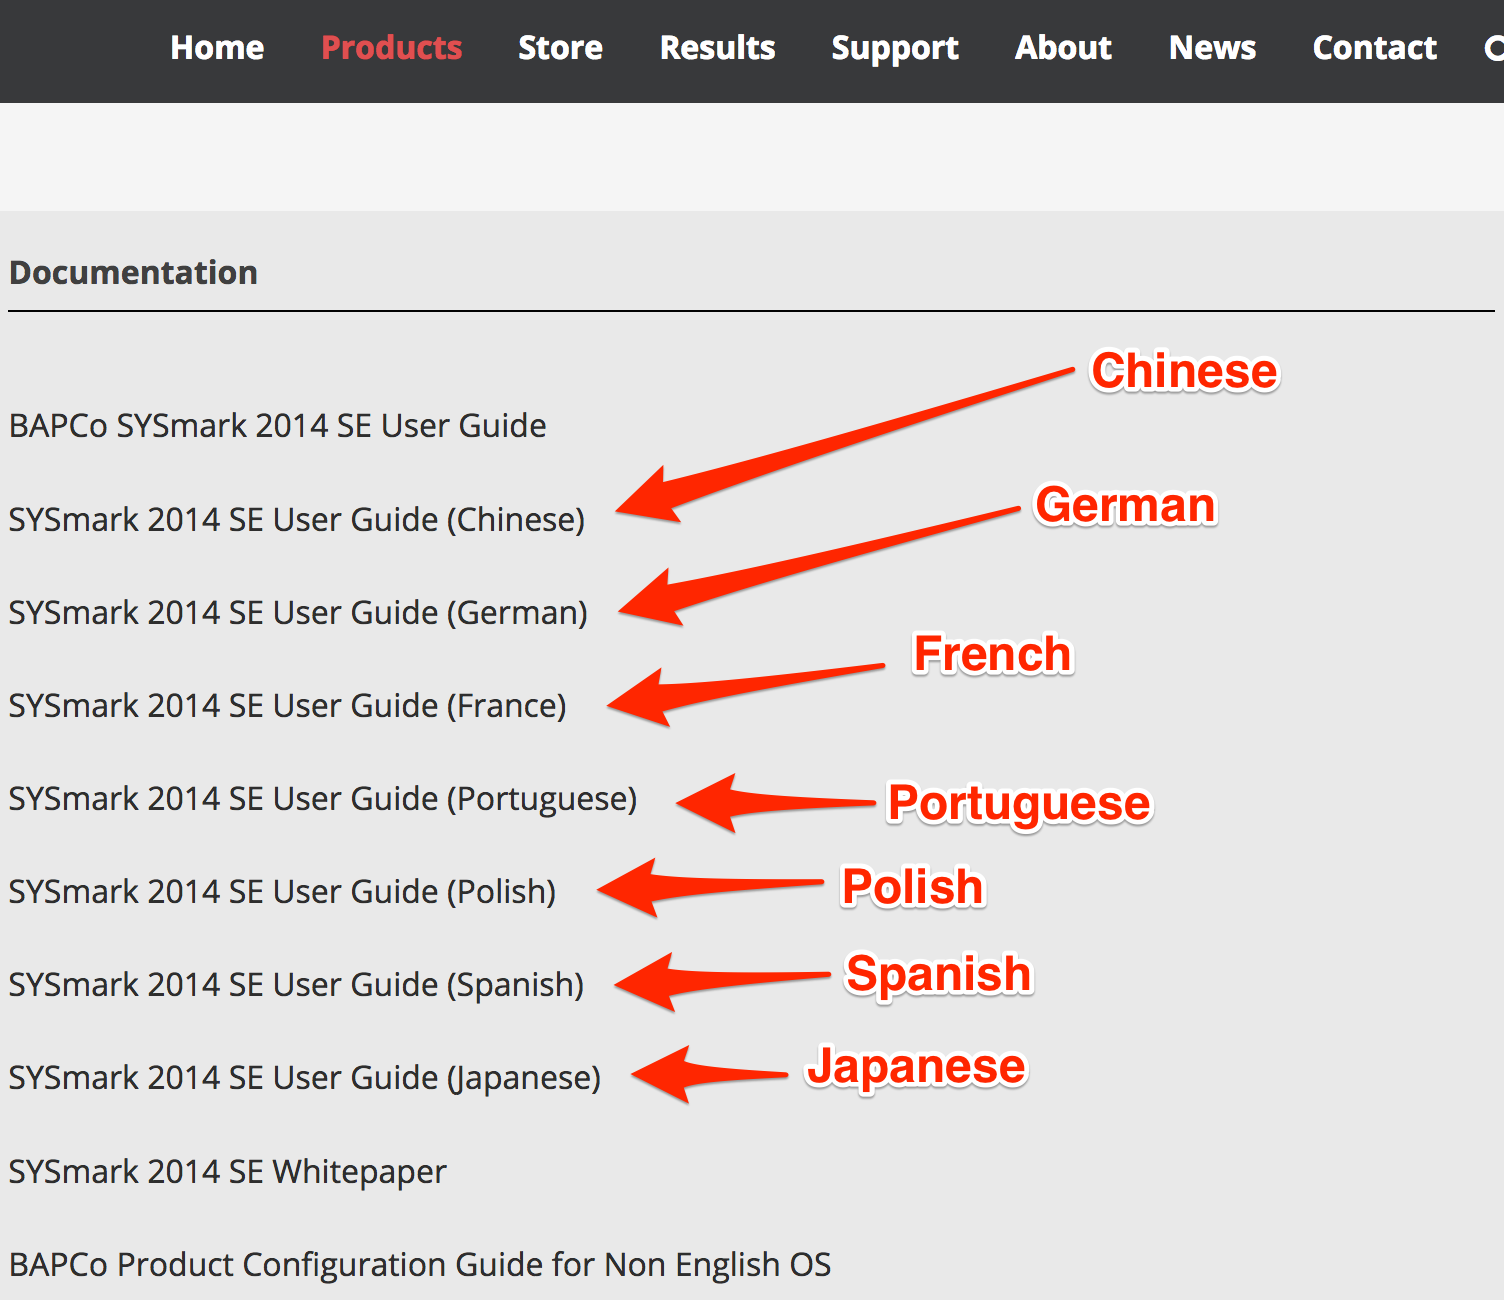 BAPCo's New SYSmark 2014 SE Benchmark User Guides Now Available in Multiple Languages